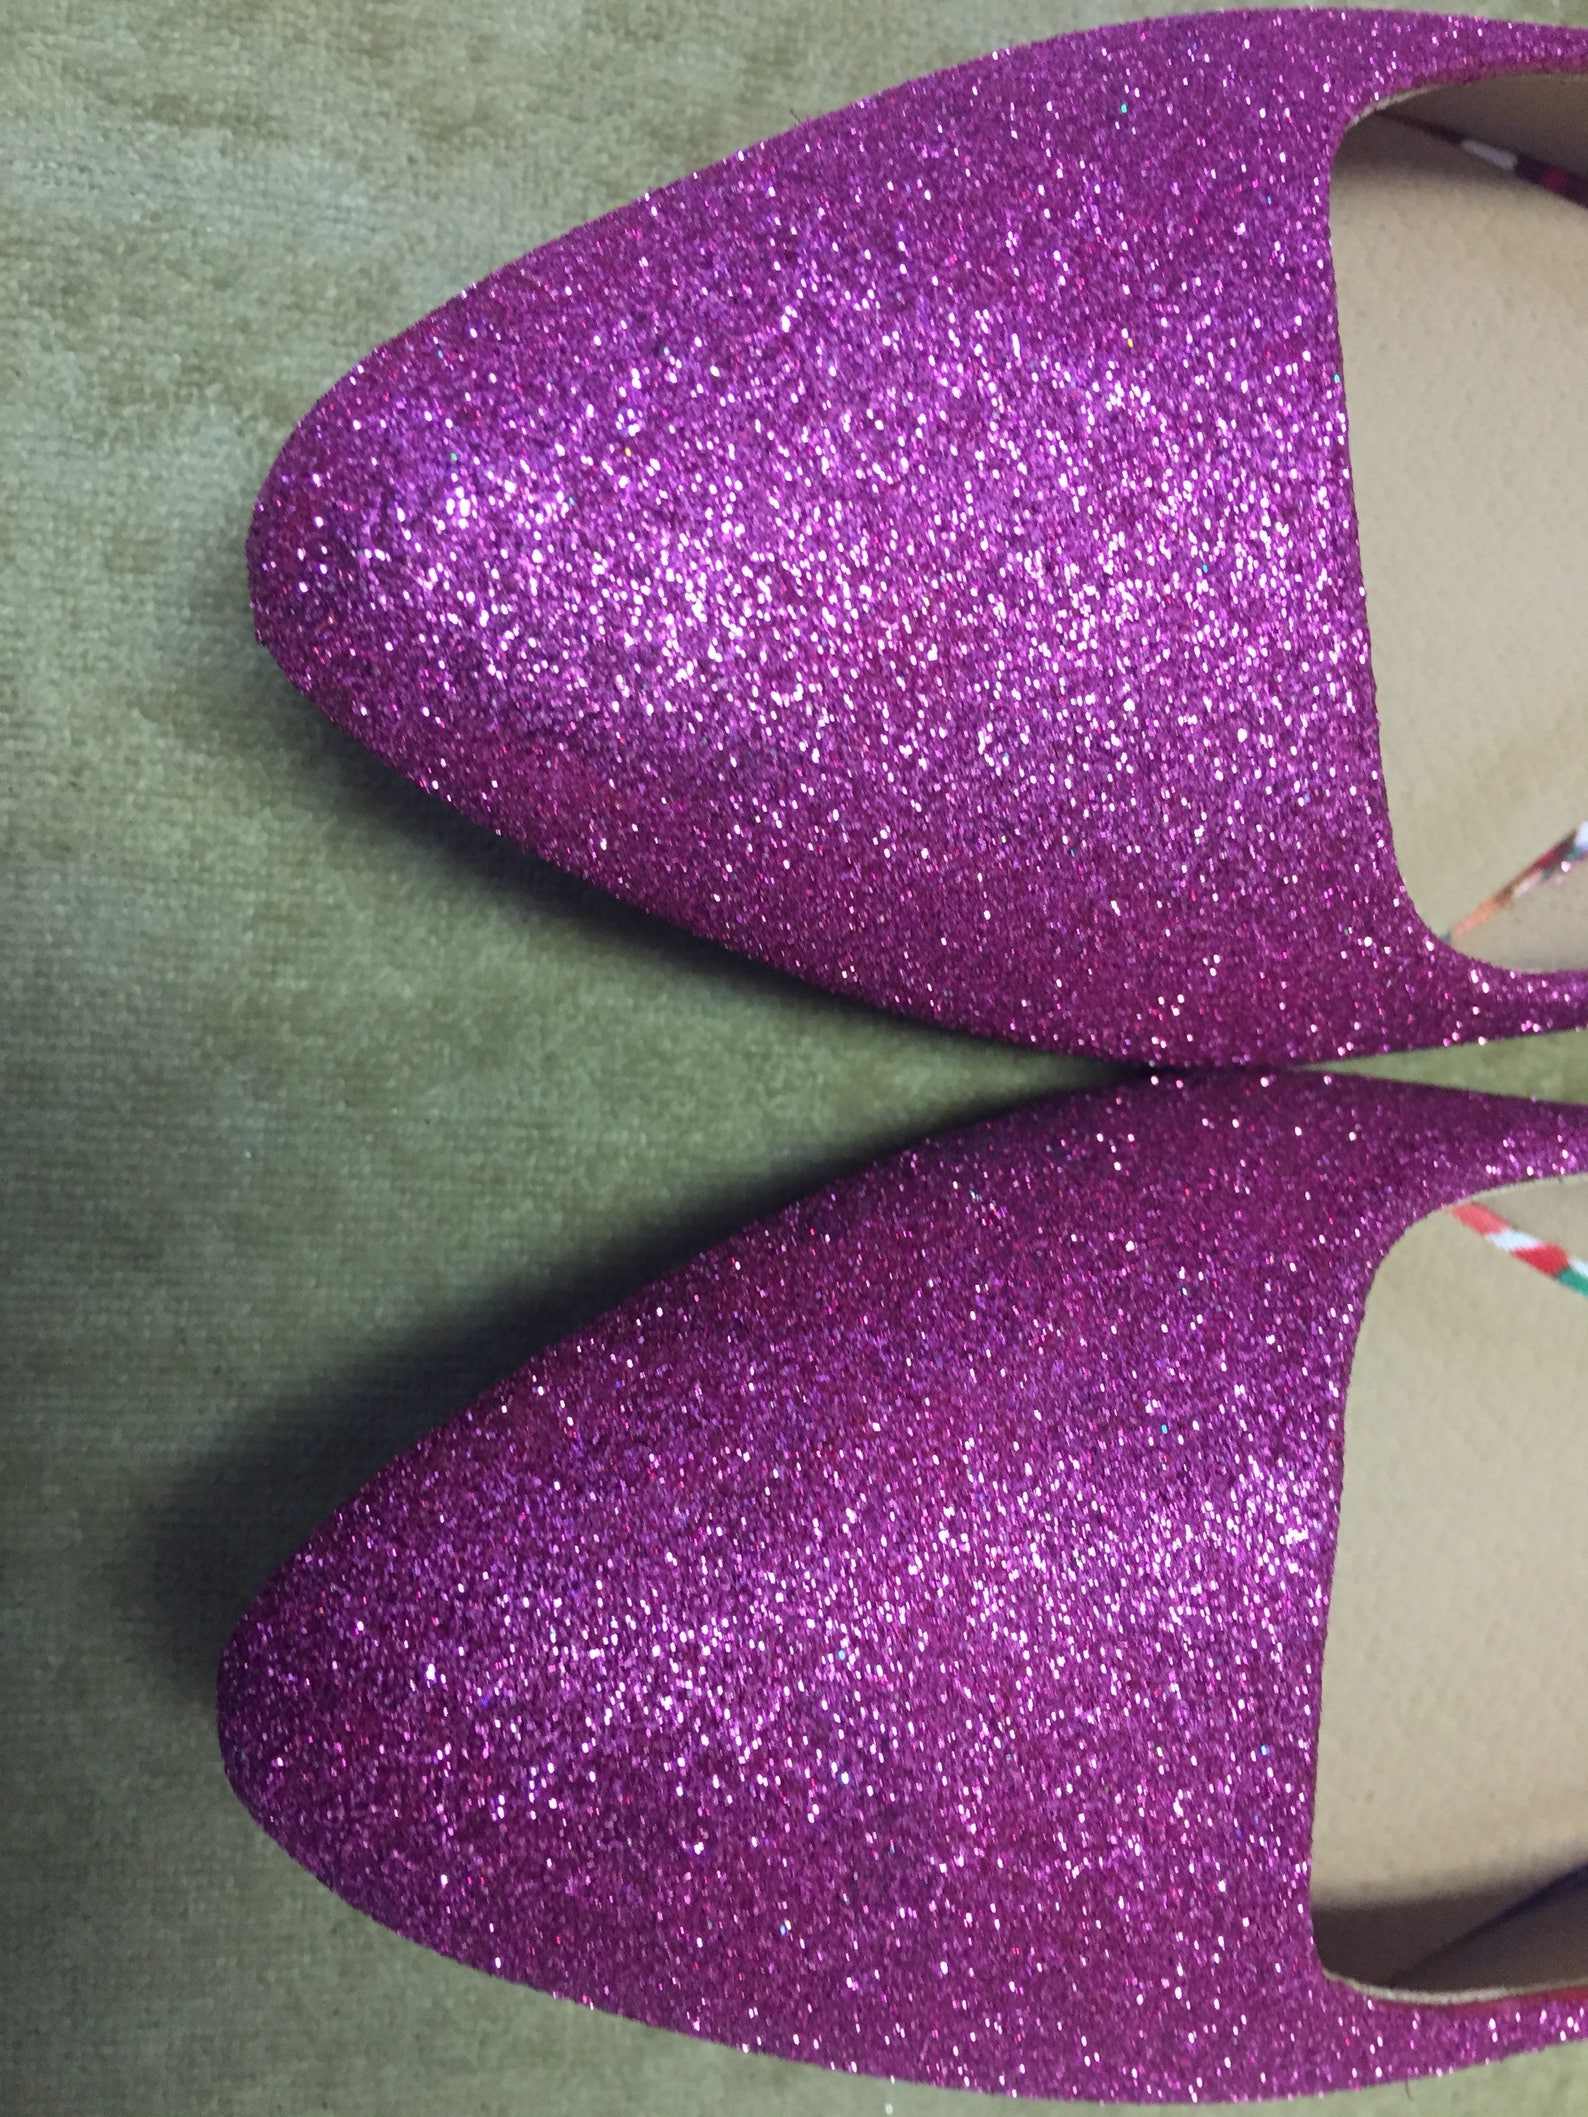 women's custom made to order pink glitter ballet flats. pointed toe ballet flats. glitter flats. slip on shoes.